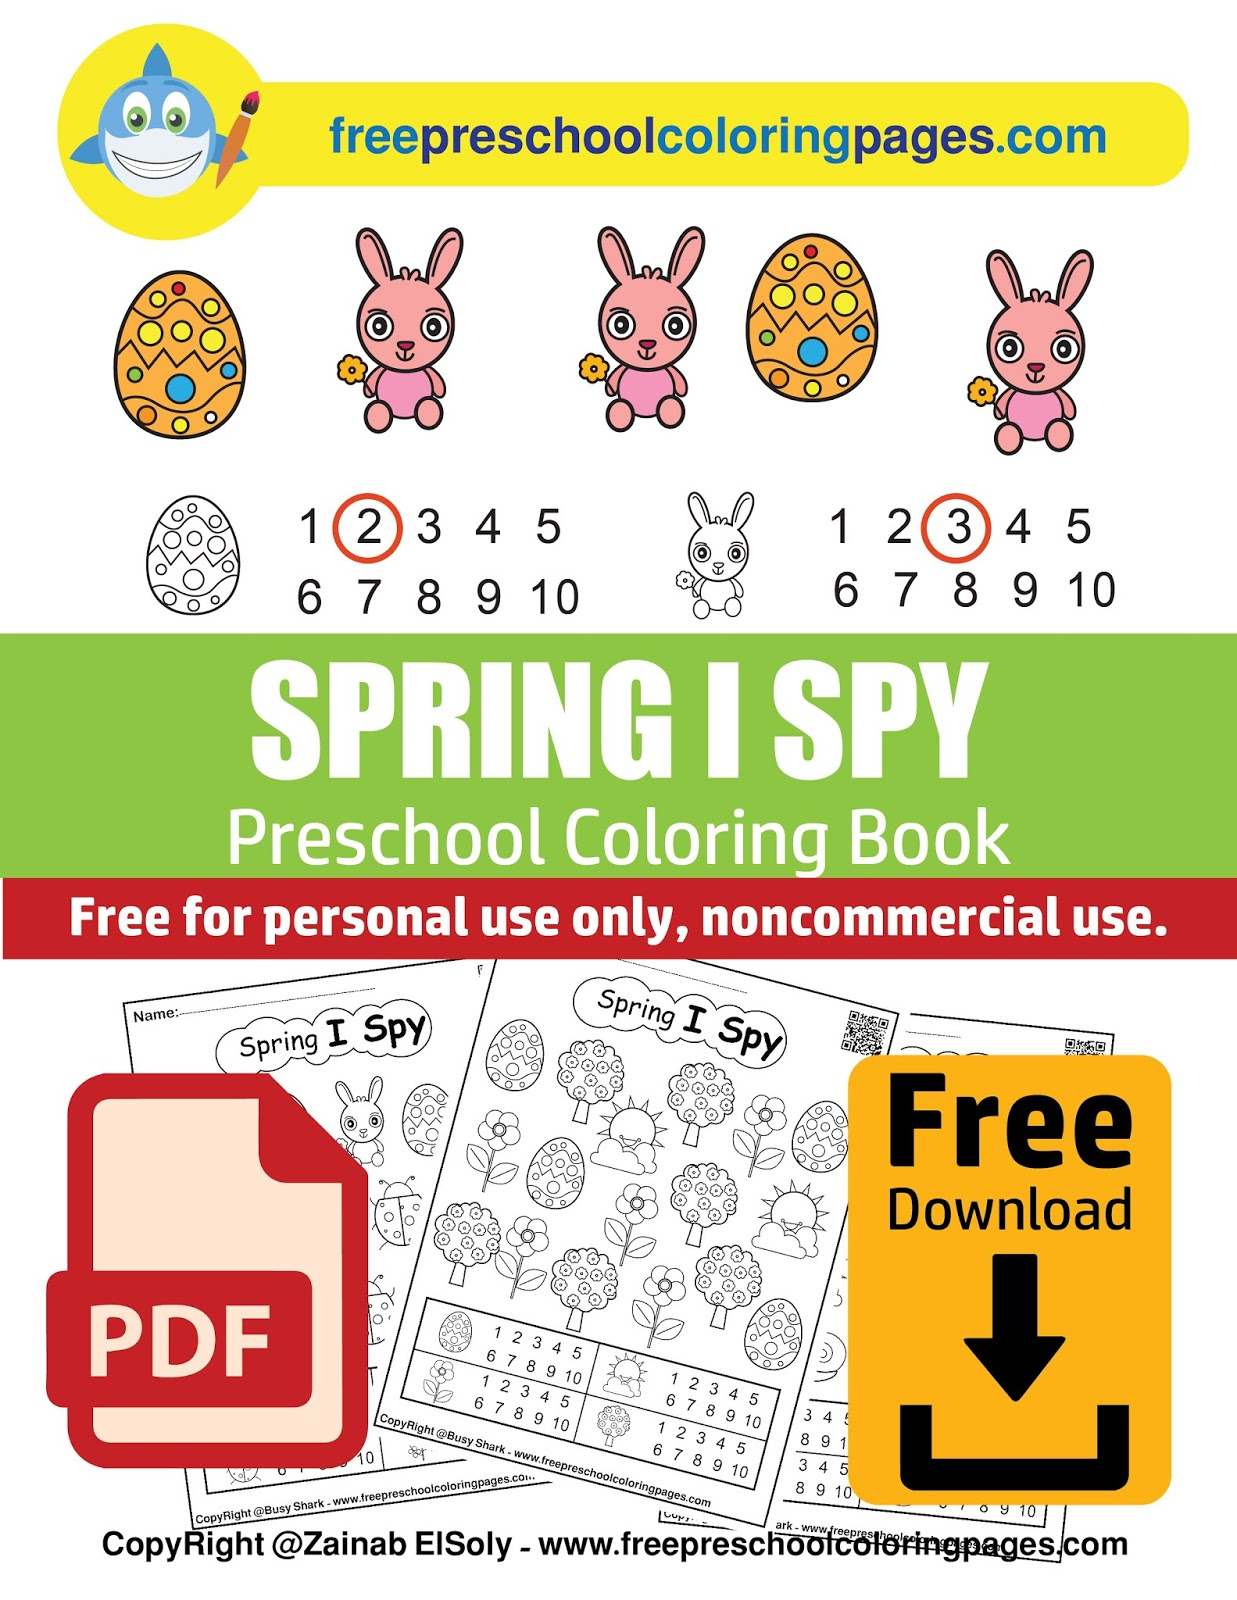 Spring I Spy free preschool coloring pages - easy level